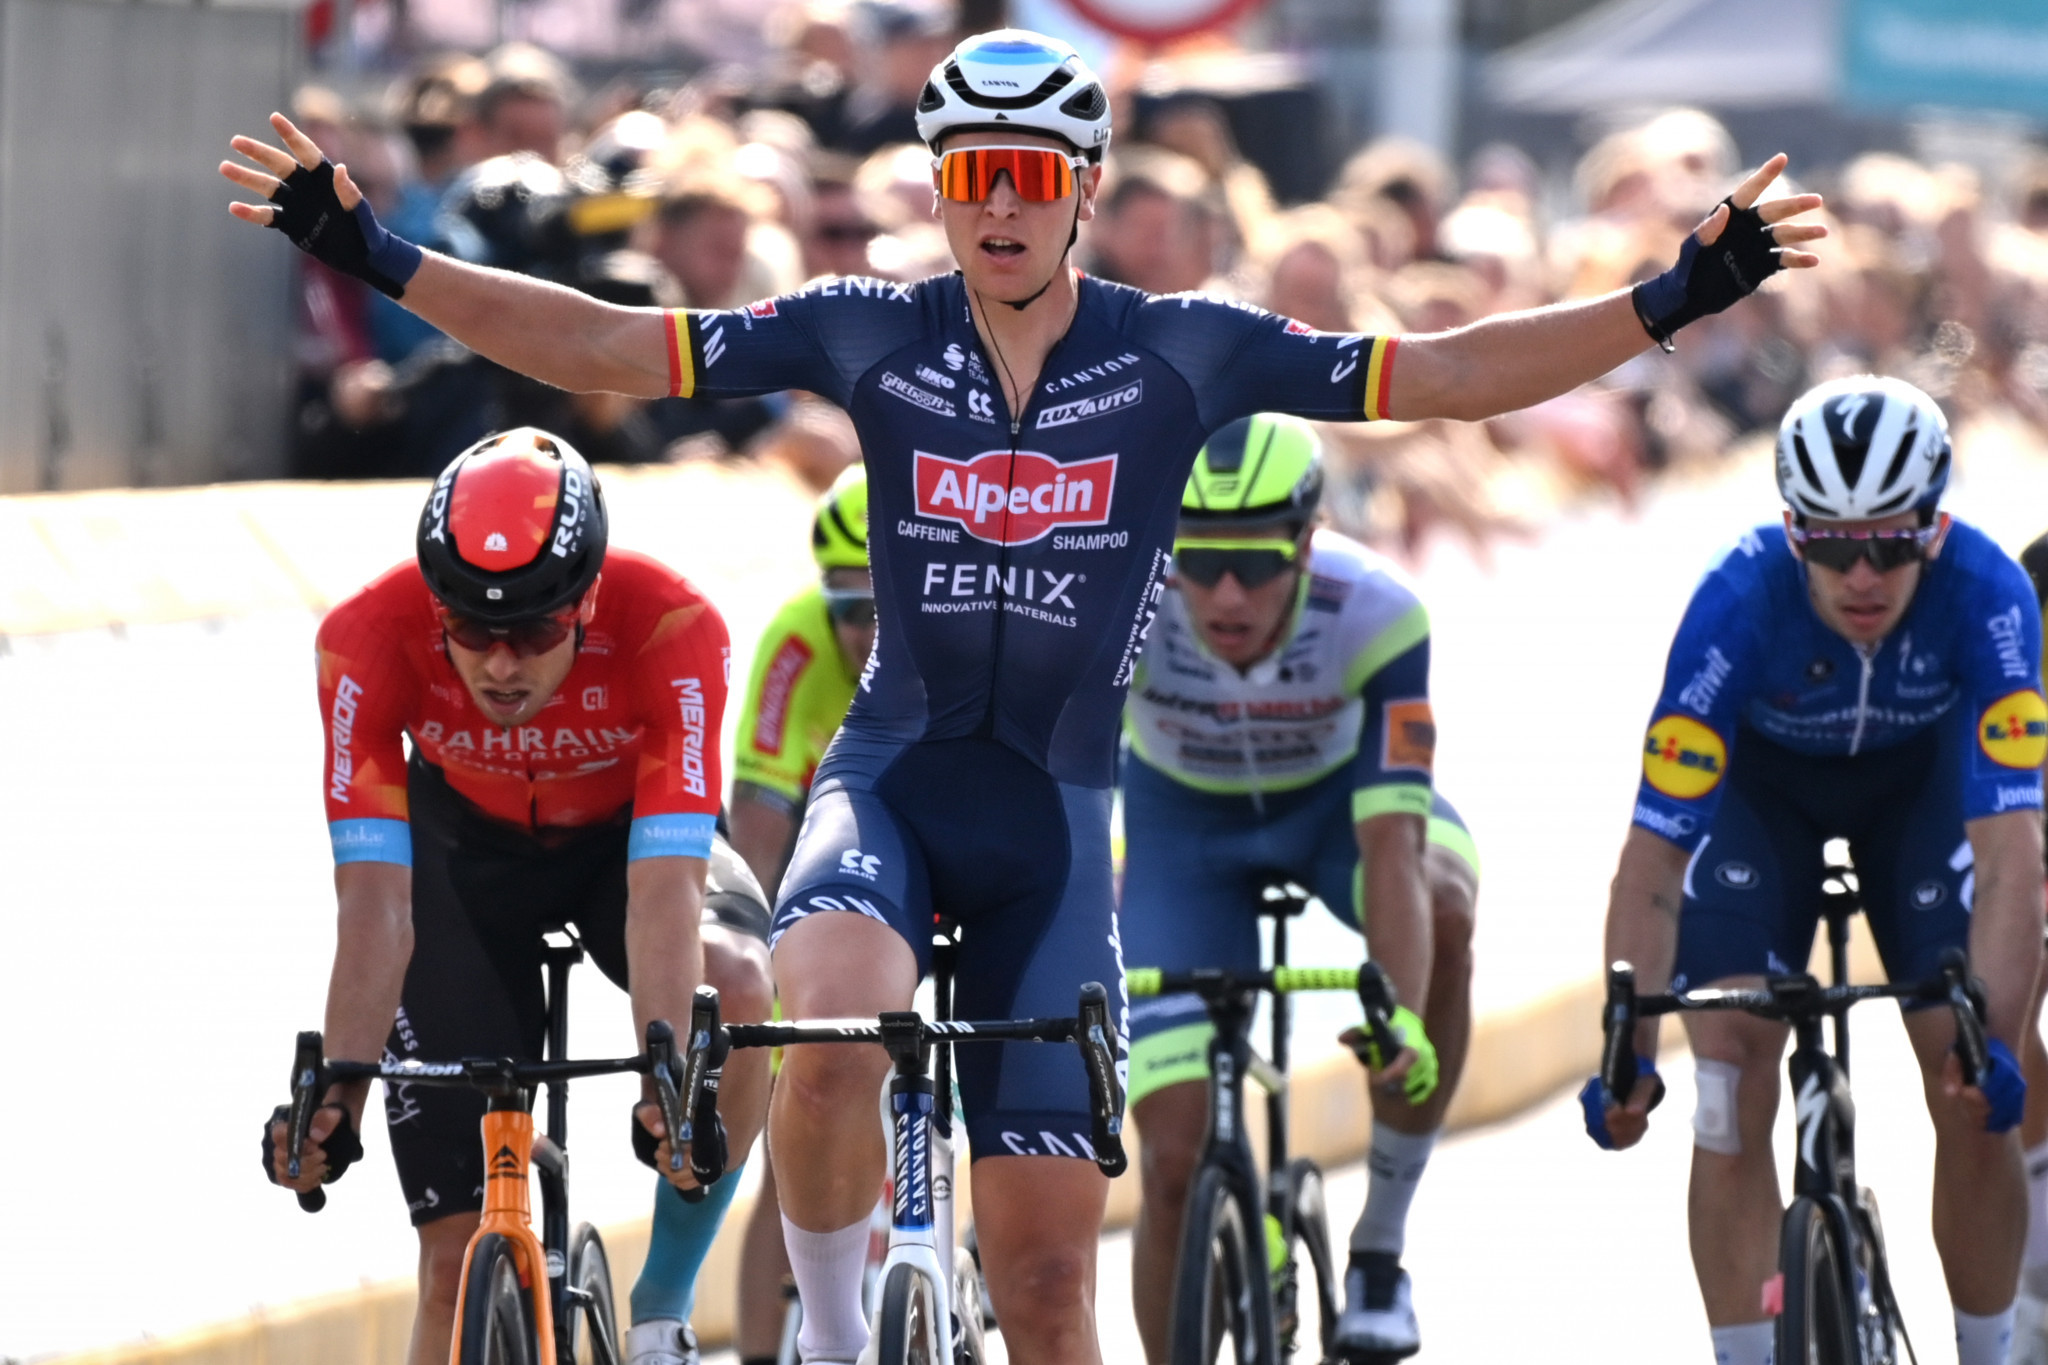 Merlier battles through strong winds to win opening stage of the Benelux Tour